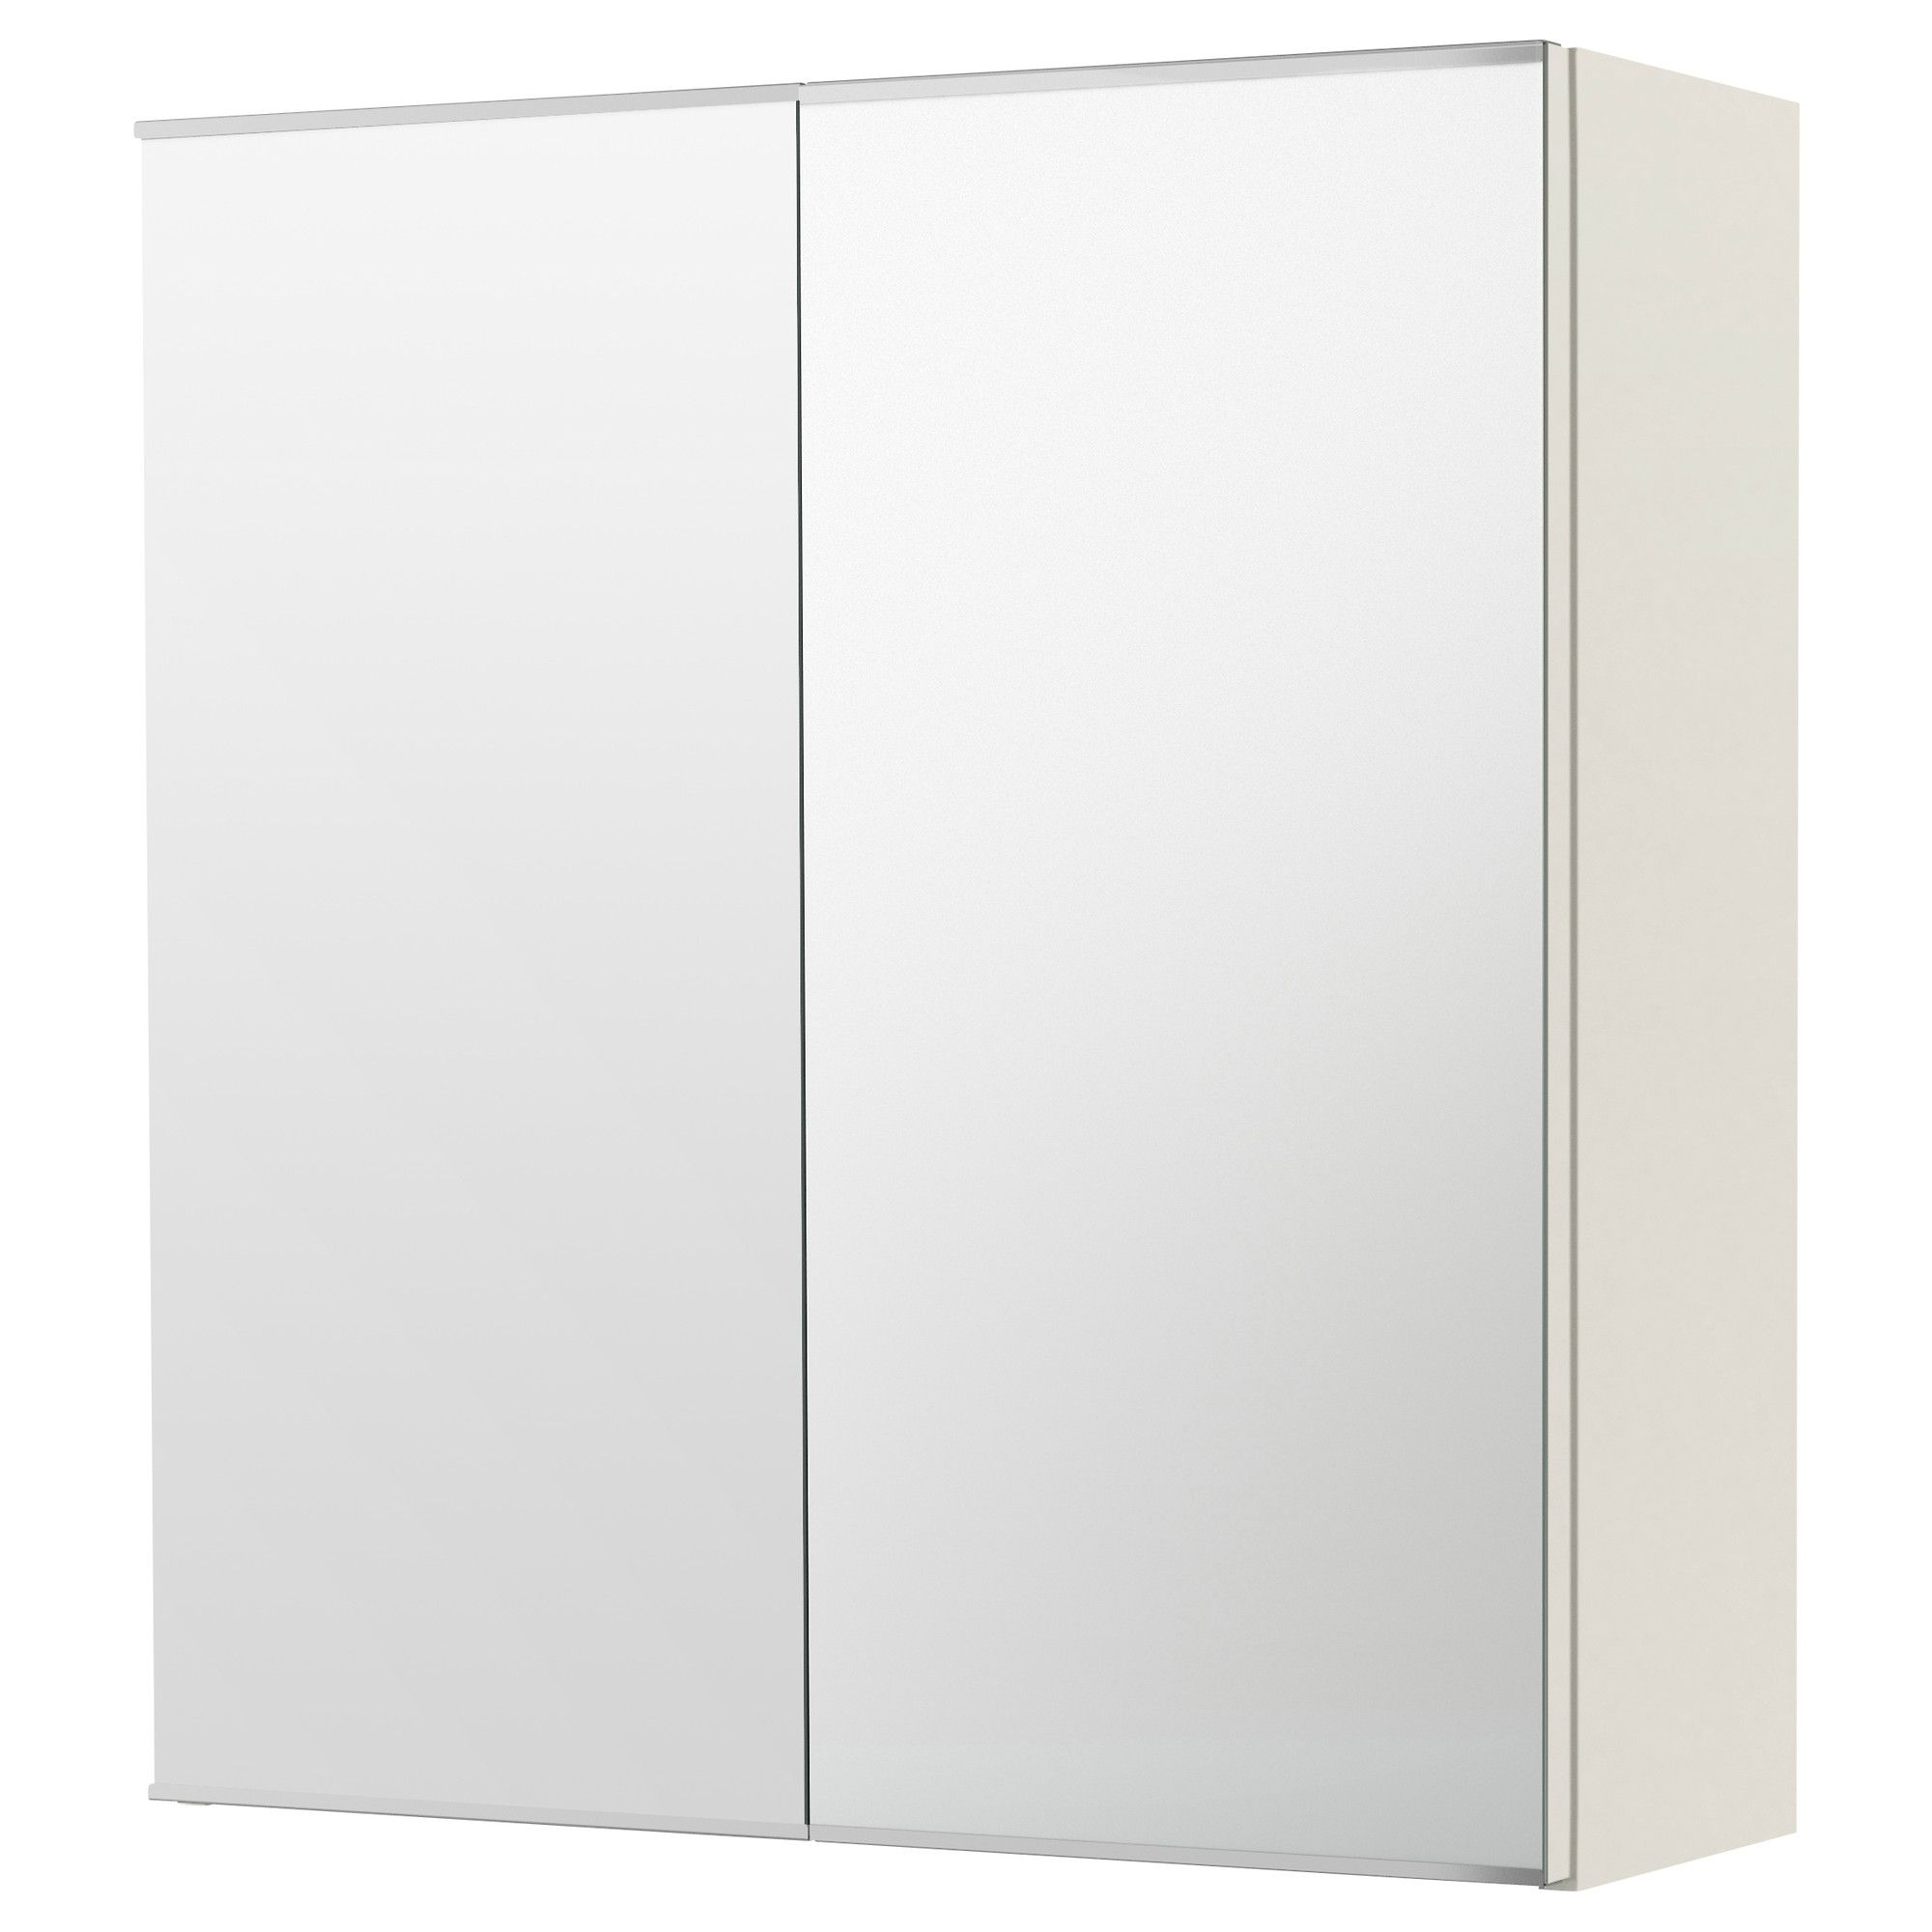 LILLÅNGEN Mirror cabinet with 2 doors, white | Mirror cabinets ...